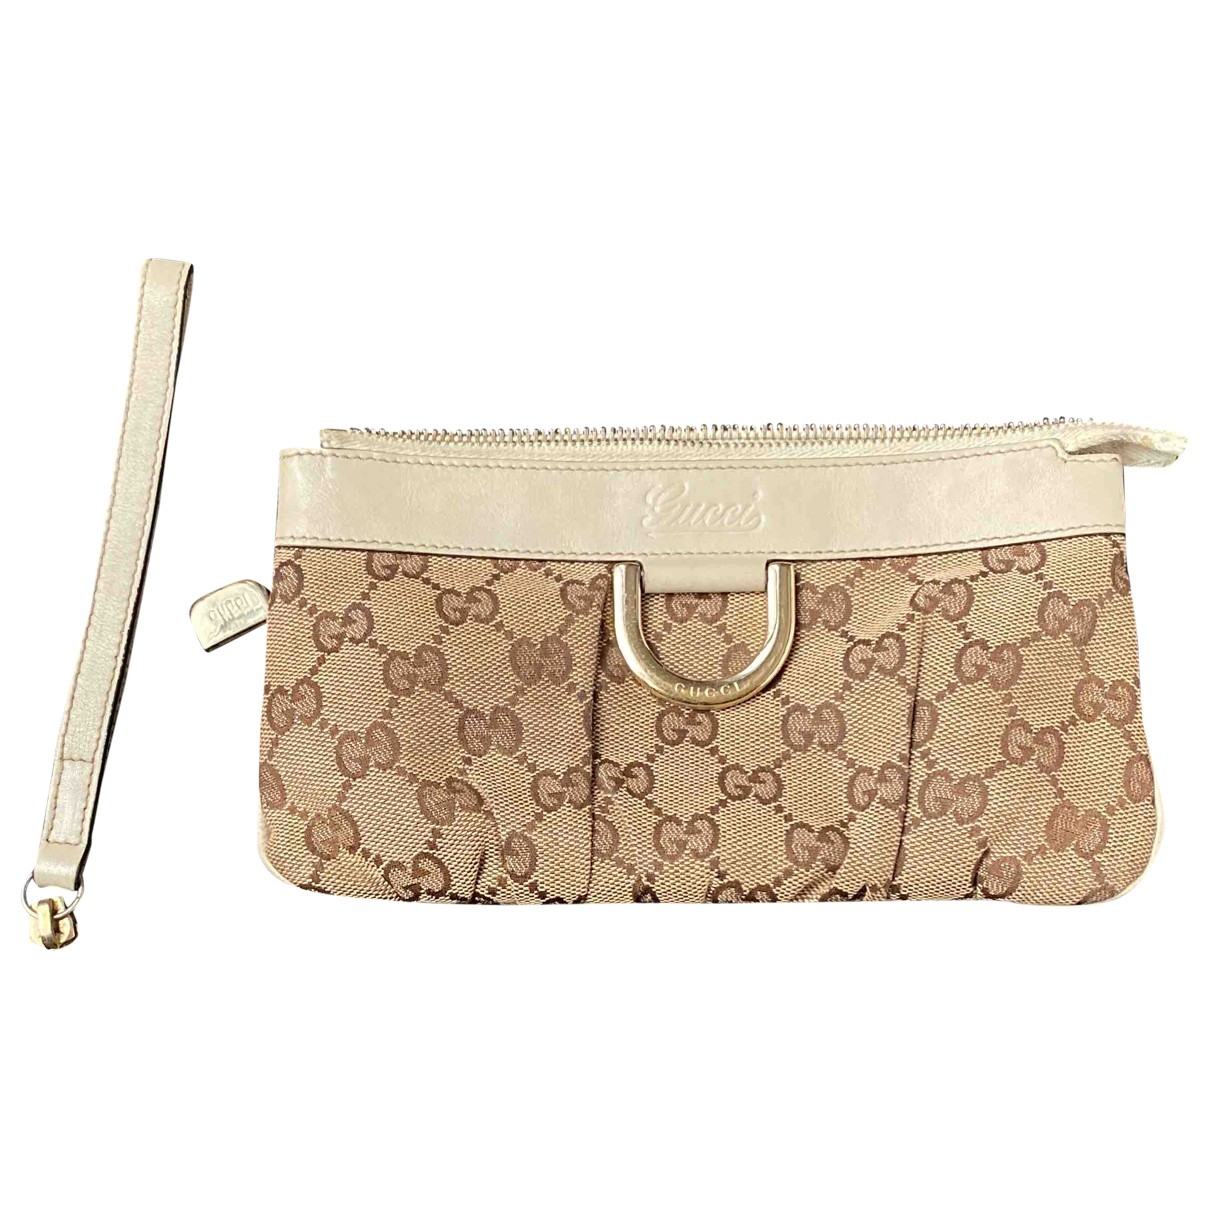 Gucci \N Clutch in  Kamel Baumwolle